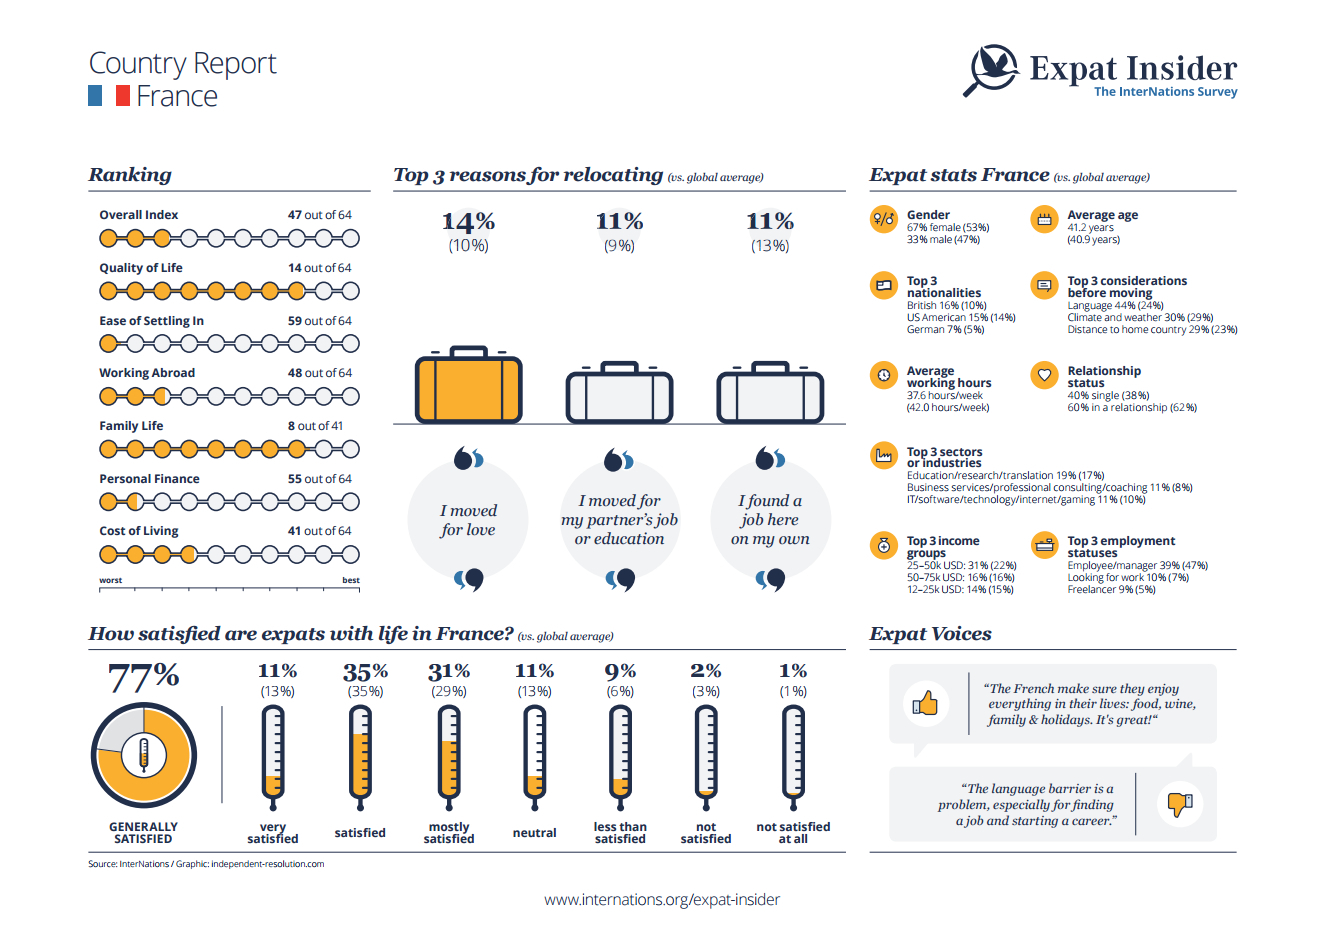 Expat statistics for France - infographic